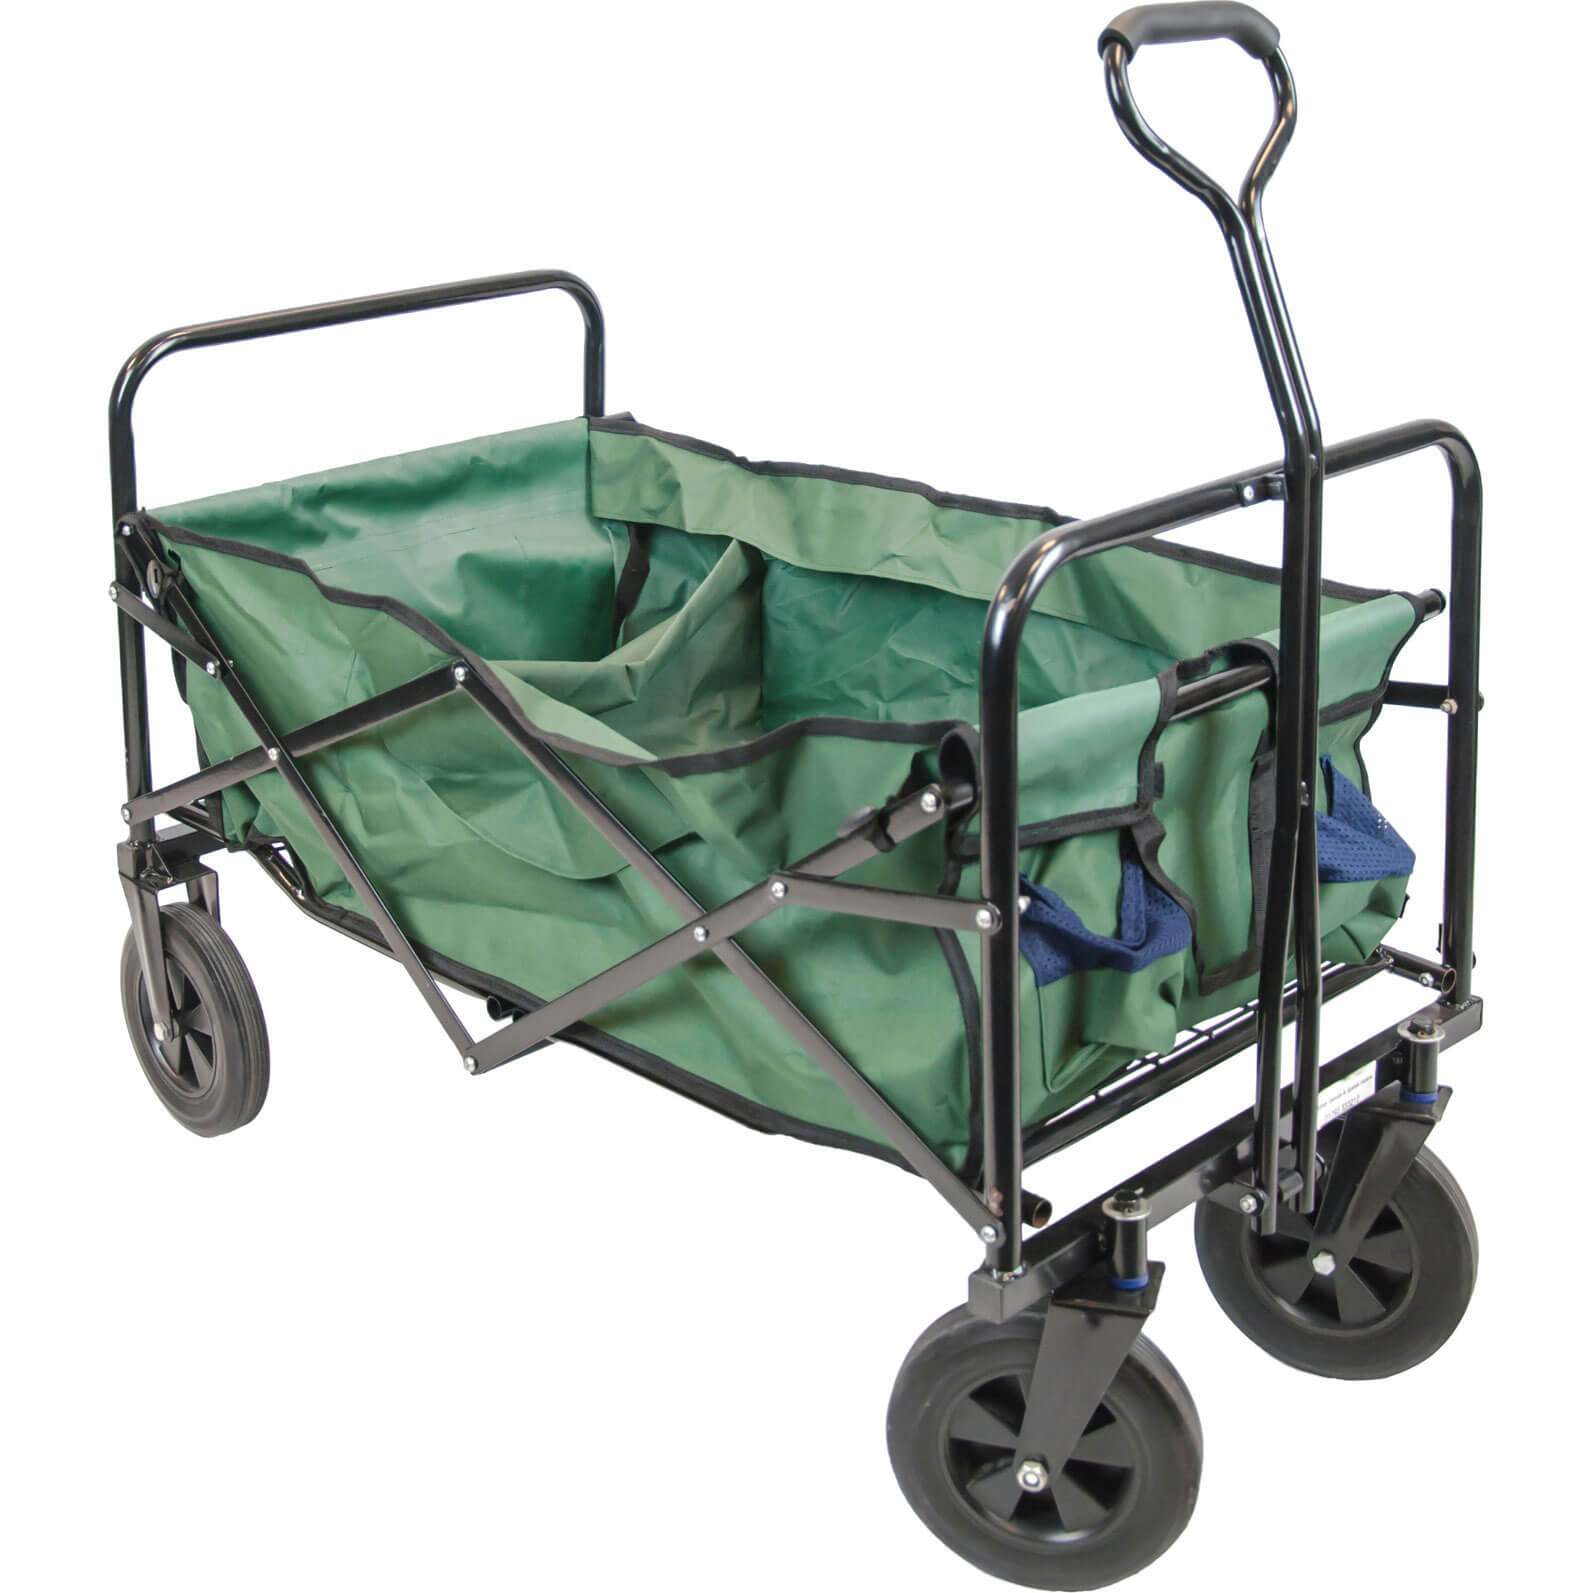 Handy Folding Garden Trolley with 75kg Capacity & Carry Bag